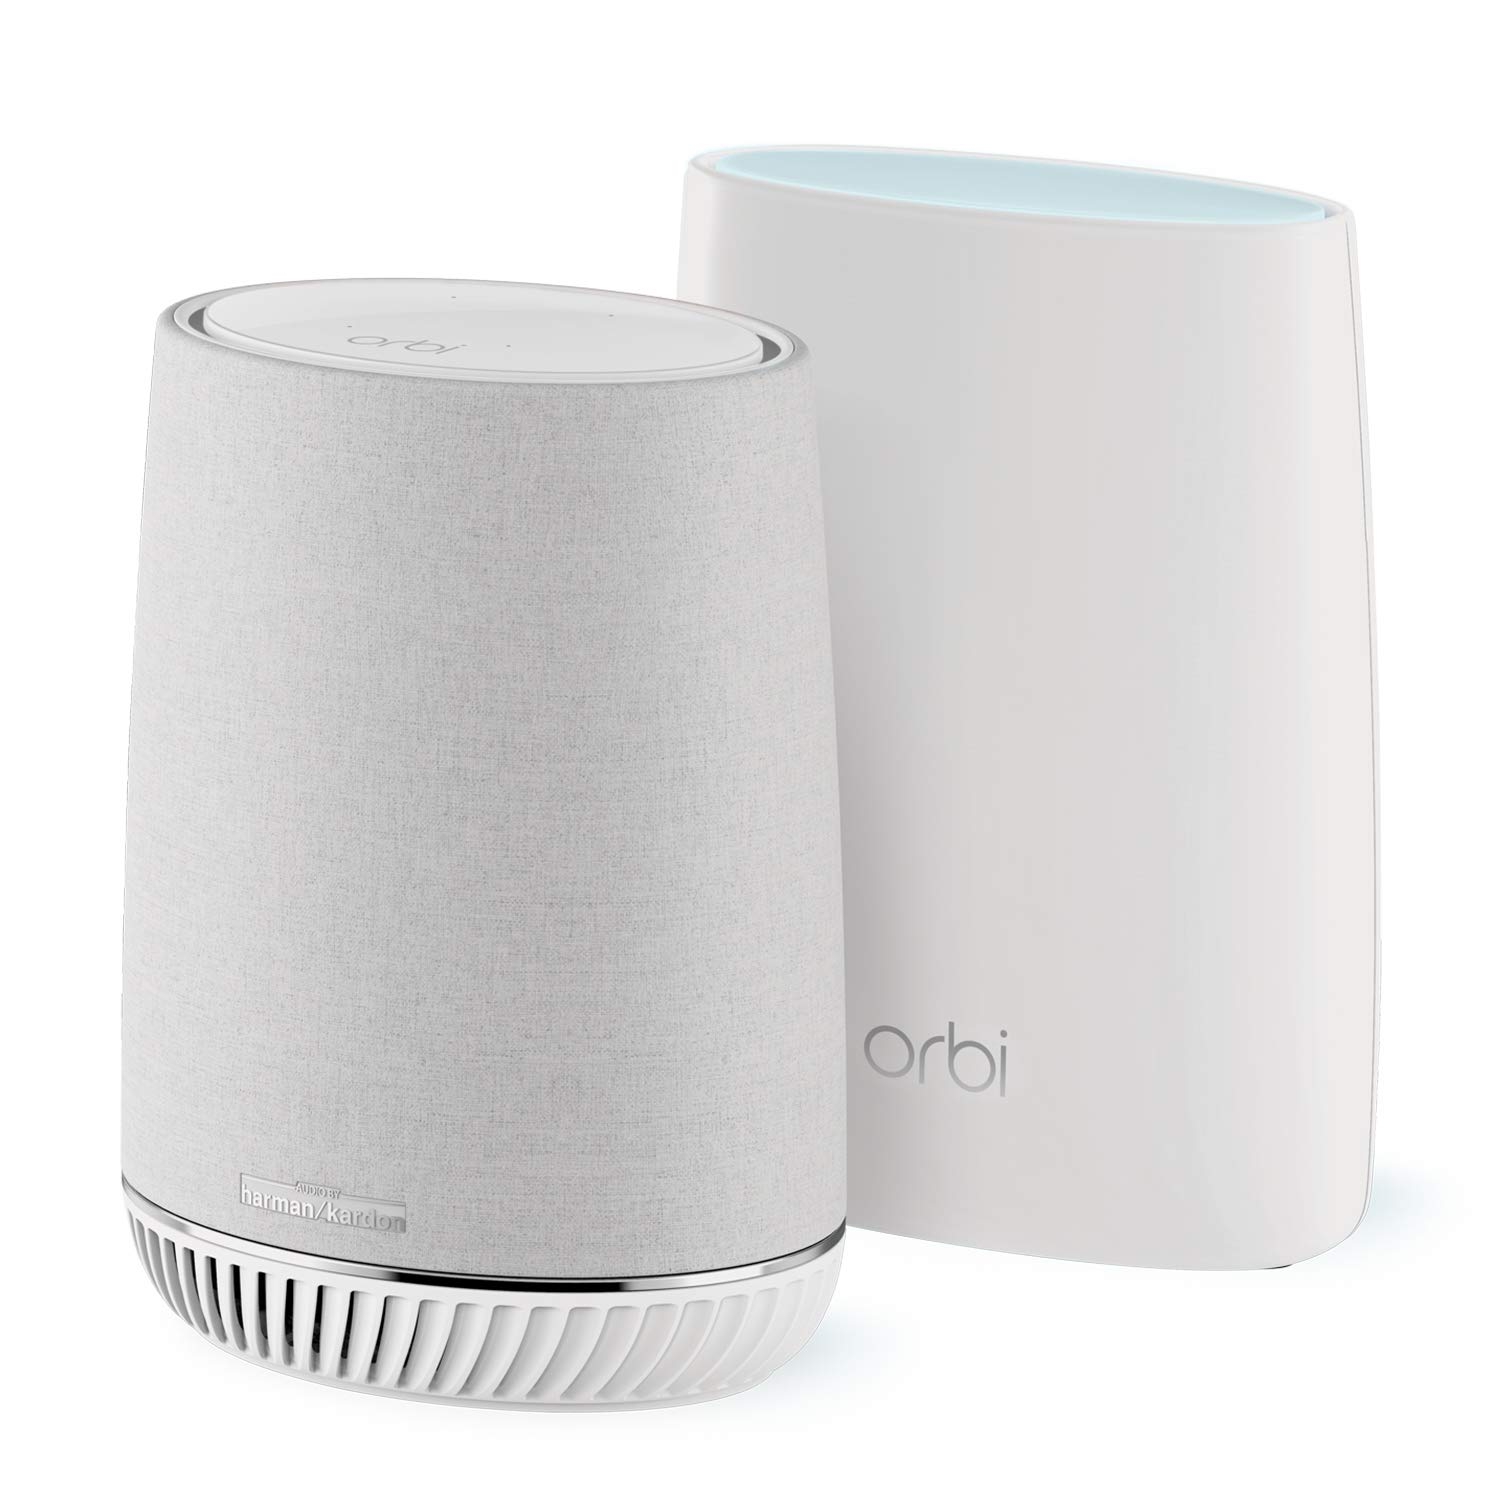 NETGEAR Orbi Voice Whole Home Mesh WiFi System - fastest WiFi router and satellite extender with Amazon Alexa and Harman Kardon speaker built in, AC3000 (RBK50V)